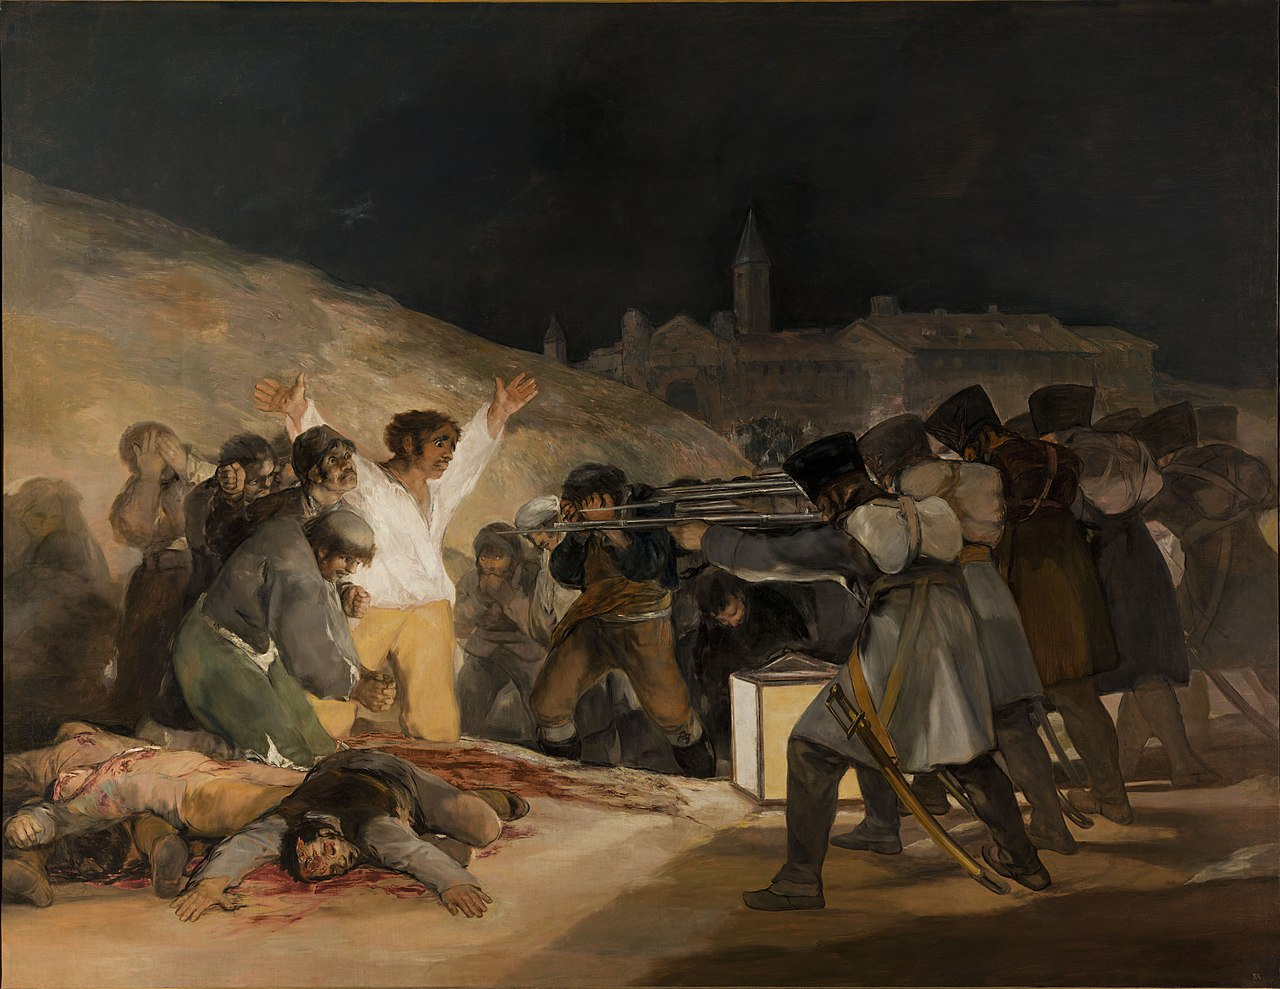 Goya: Disasters of War